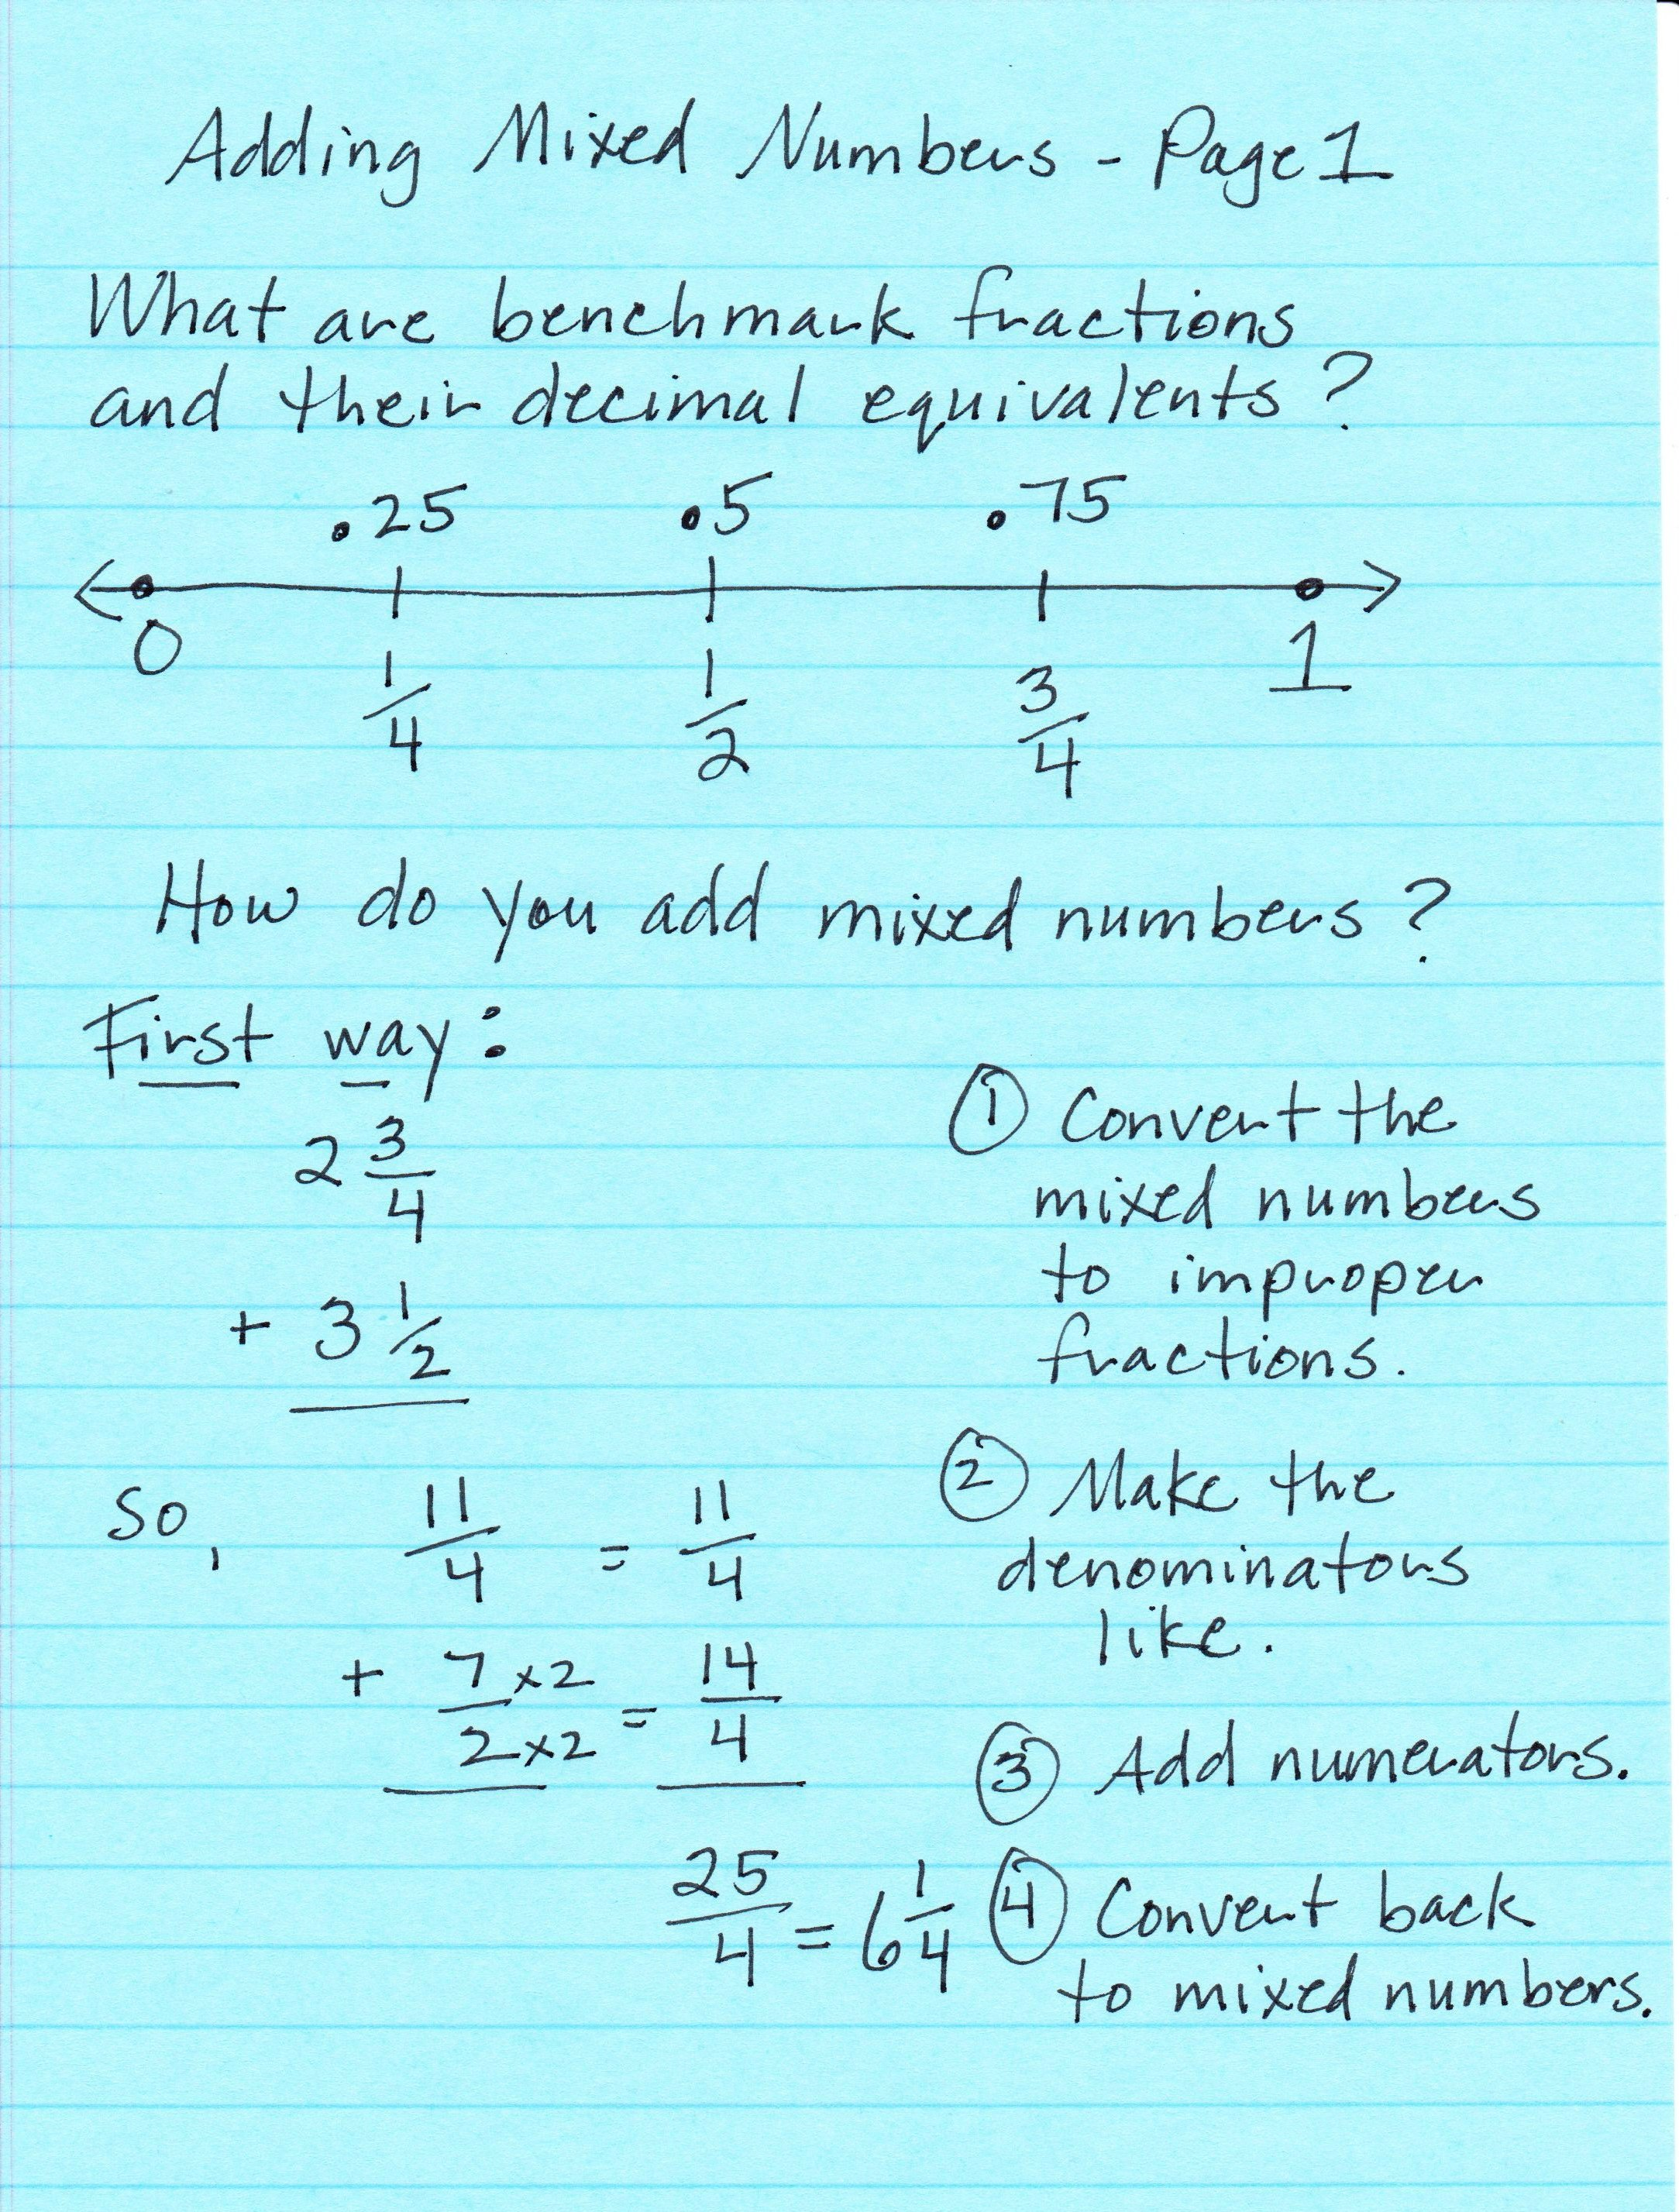 worksheet Adding Mixed Numbers mabb christina m class math notes adding mixed numbers page 1